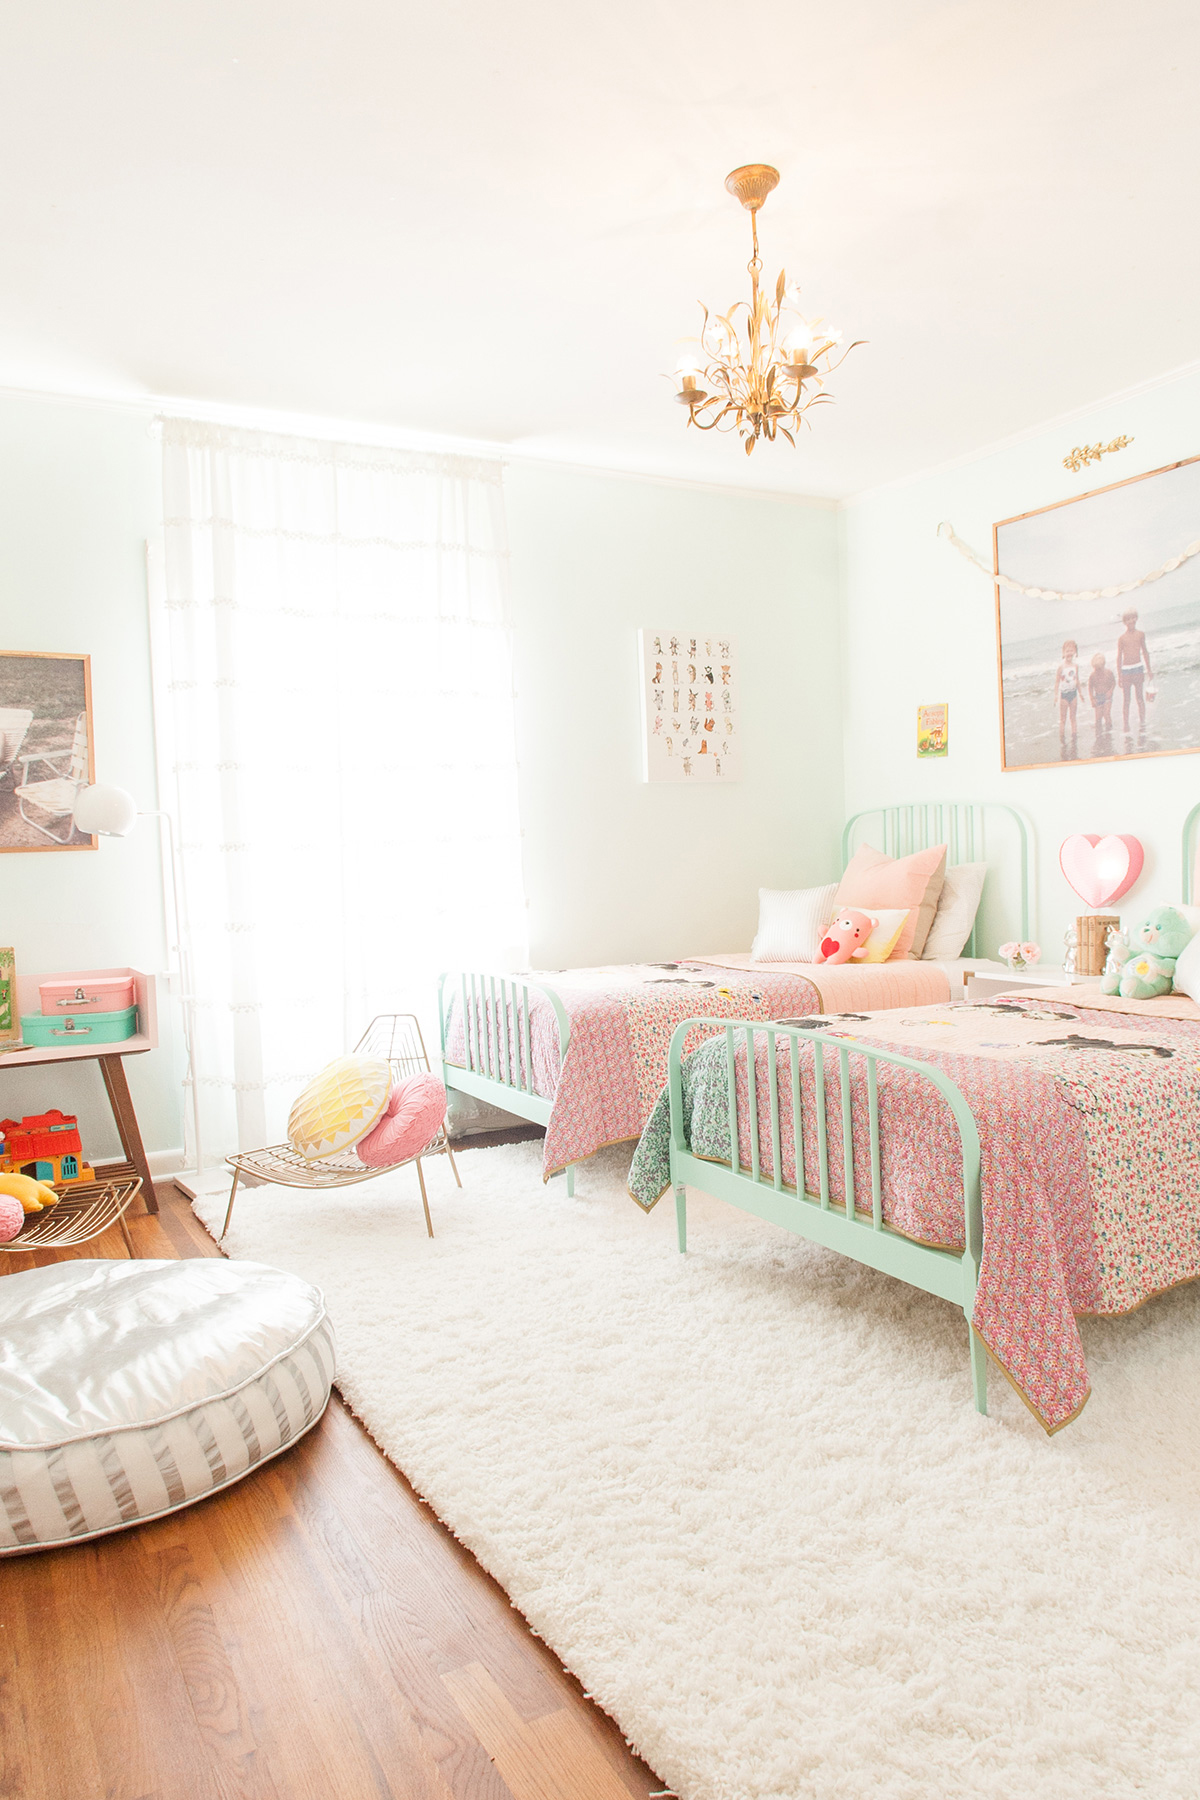 Toddler Girl Room Interior Design: A Kids Room At Grandma's House